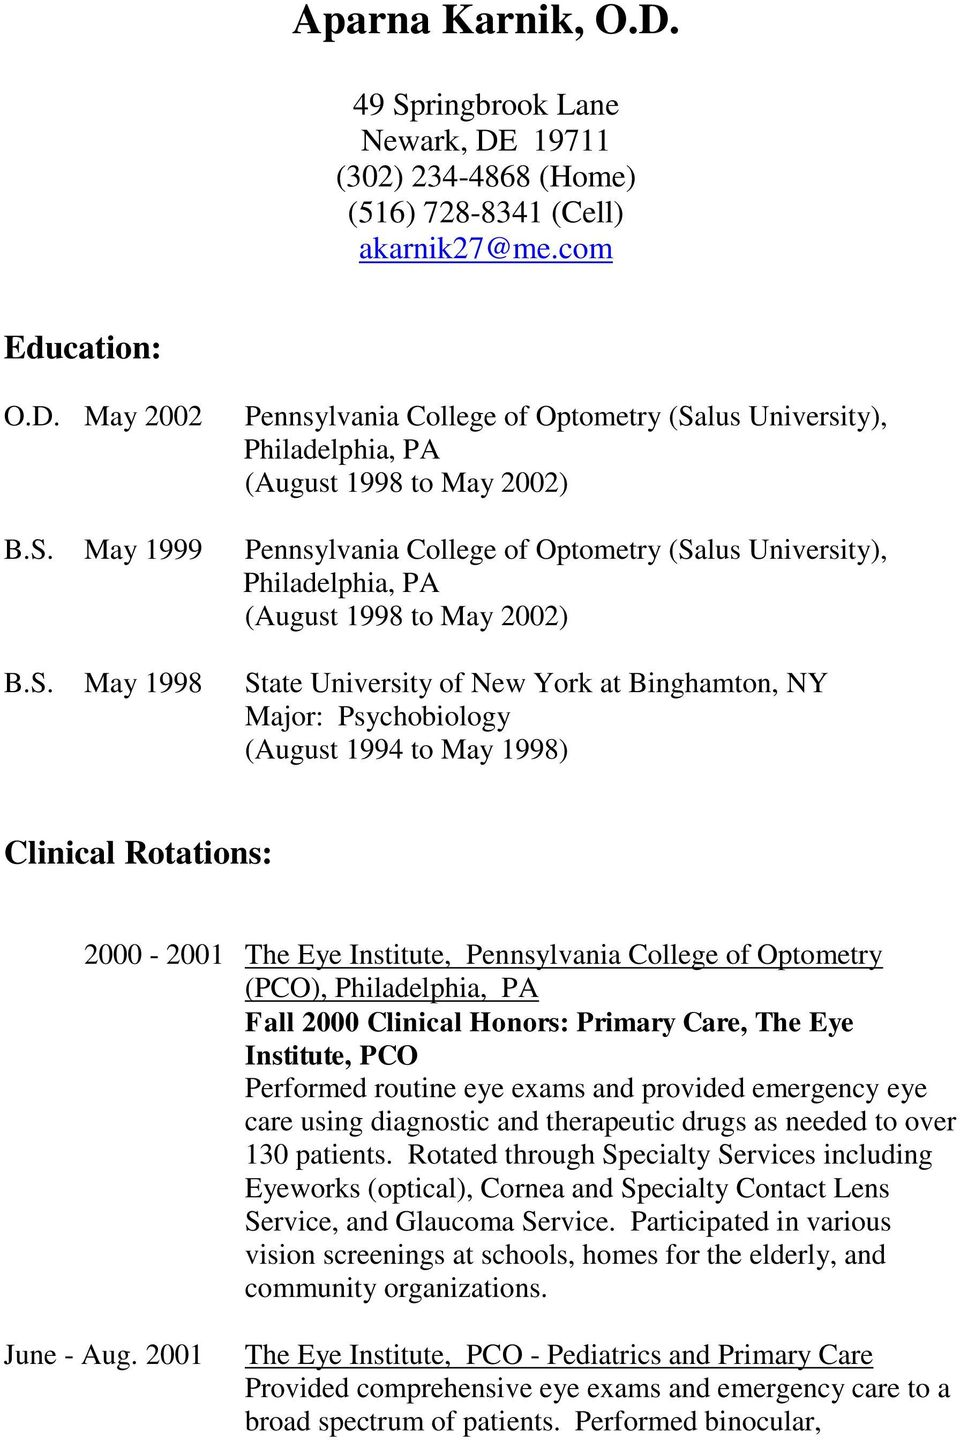 1994 to May 1998) Clinical Rotations: 2000-2001 The Eye Institute, Pennsylvania College of Optometry (PCO), Philadelphia, PA Fall 2000 Clinical Honors: Primary Care, The Eye Institute, PCO Performed